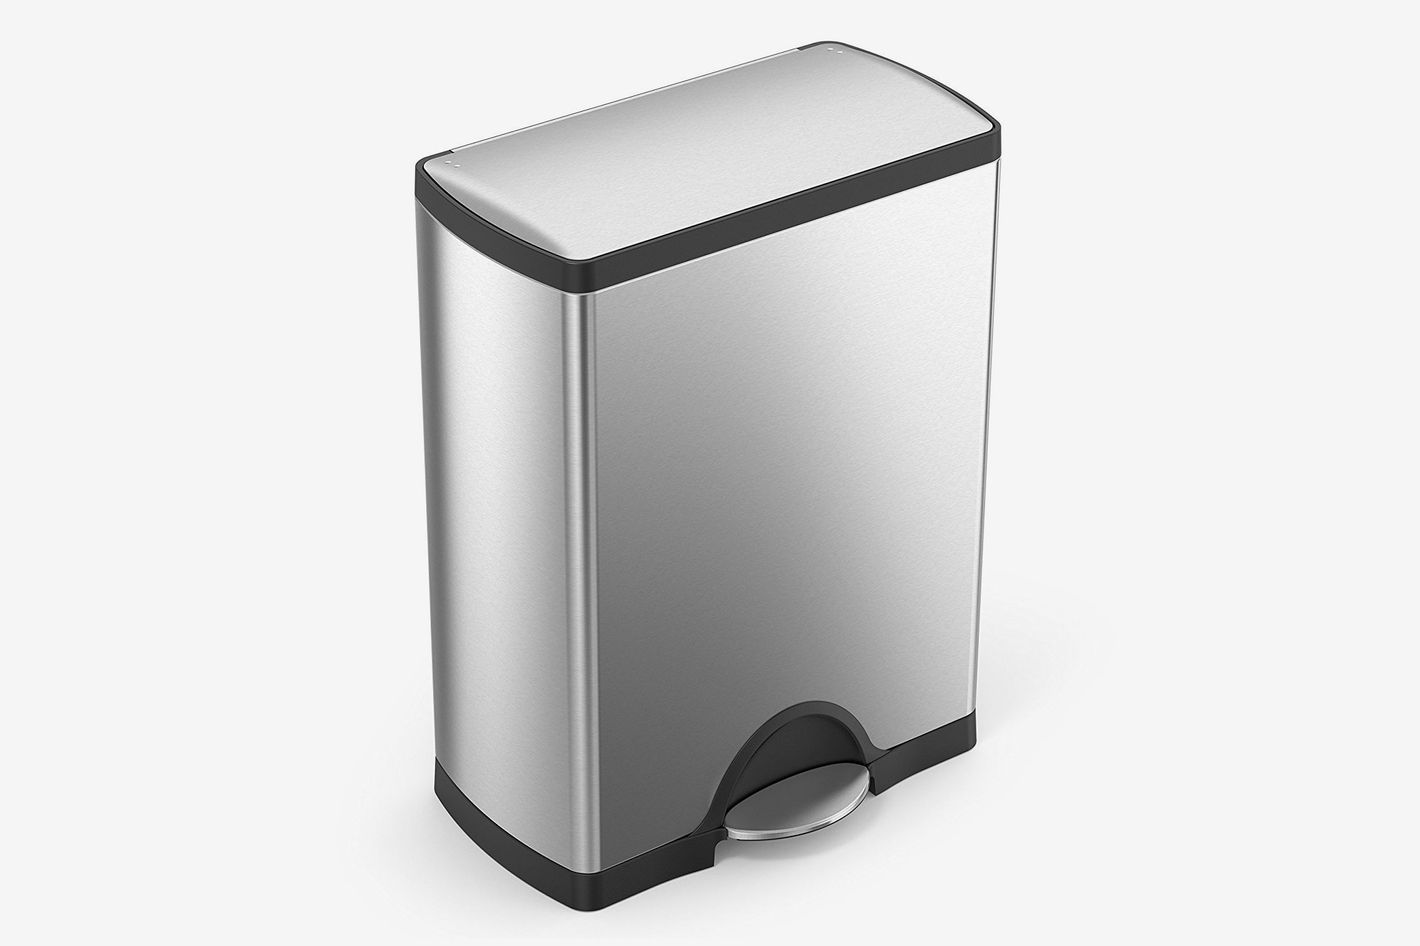 Superbe Simplehuman 50 Liter / 13.2 Gallon Stainless Steel Rectangular Kitchen Step Trash  Can, Brushed Stainless